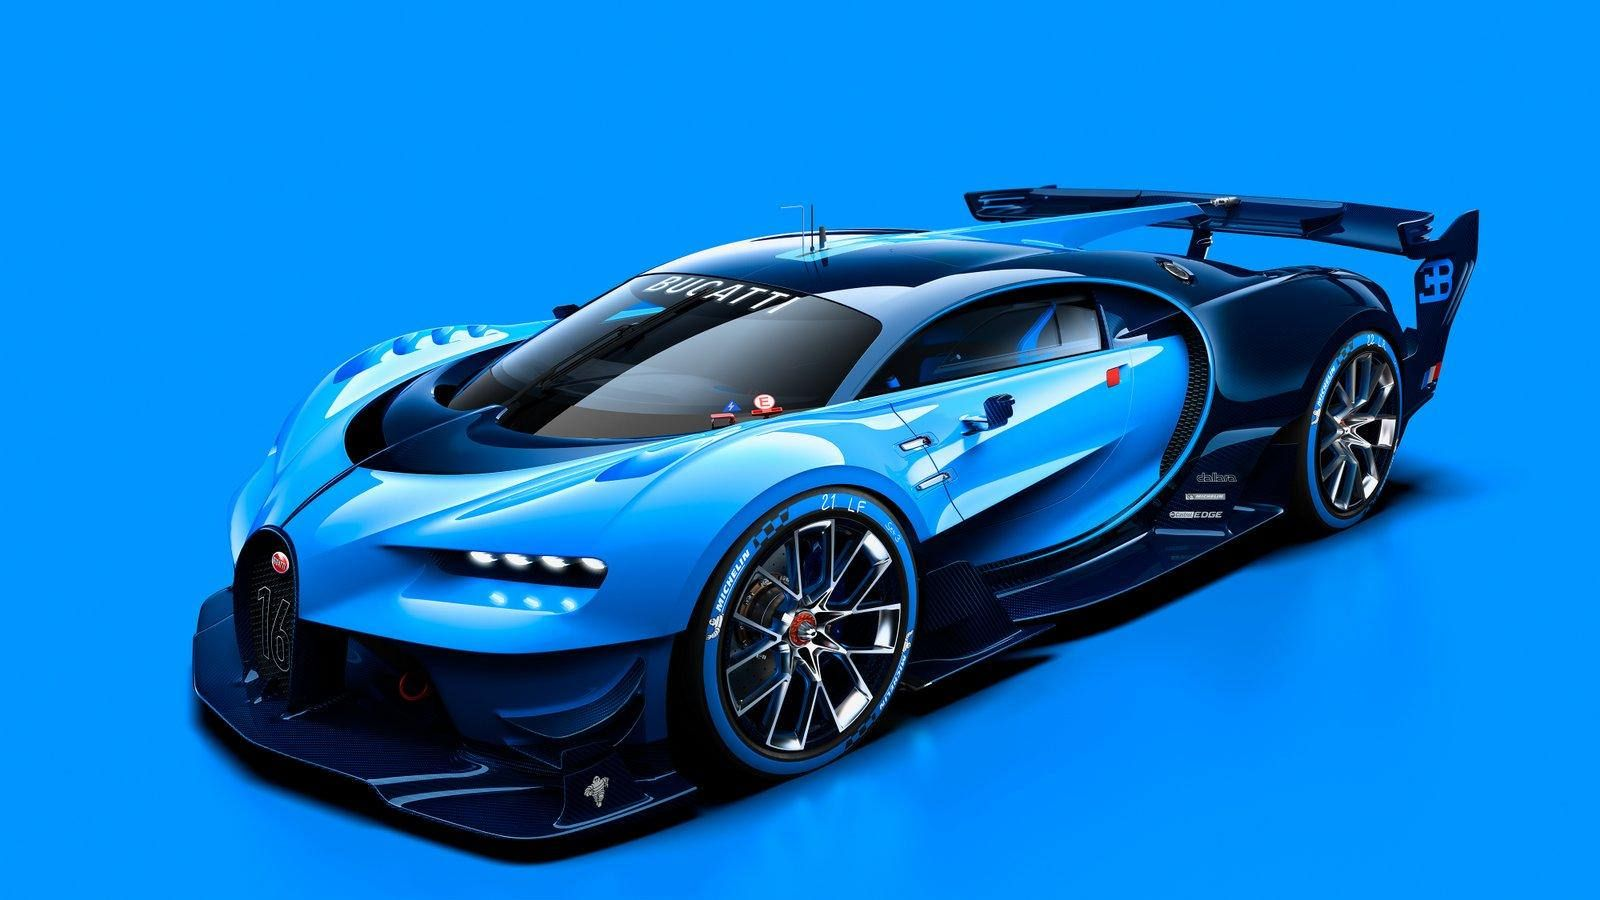 Attirant Image For Free 2015 Bugatti Vision Gran Turismo Car HD Wallpaper